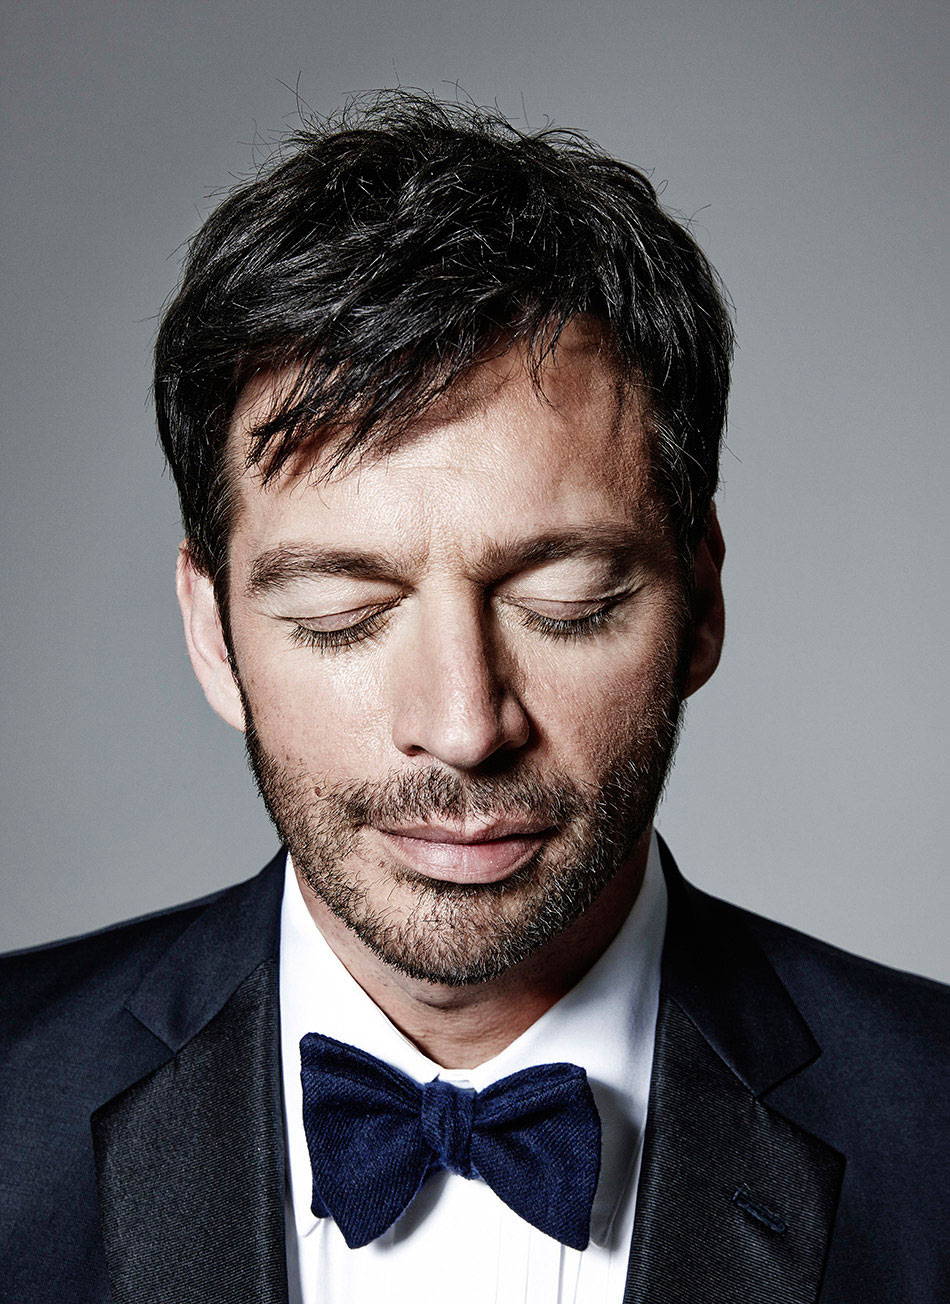 Harry_Connick_Jr_David_Needleman_05_398